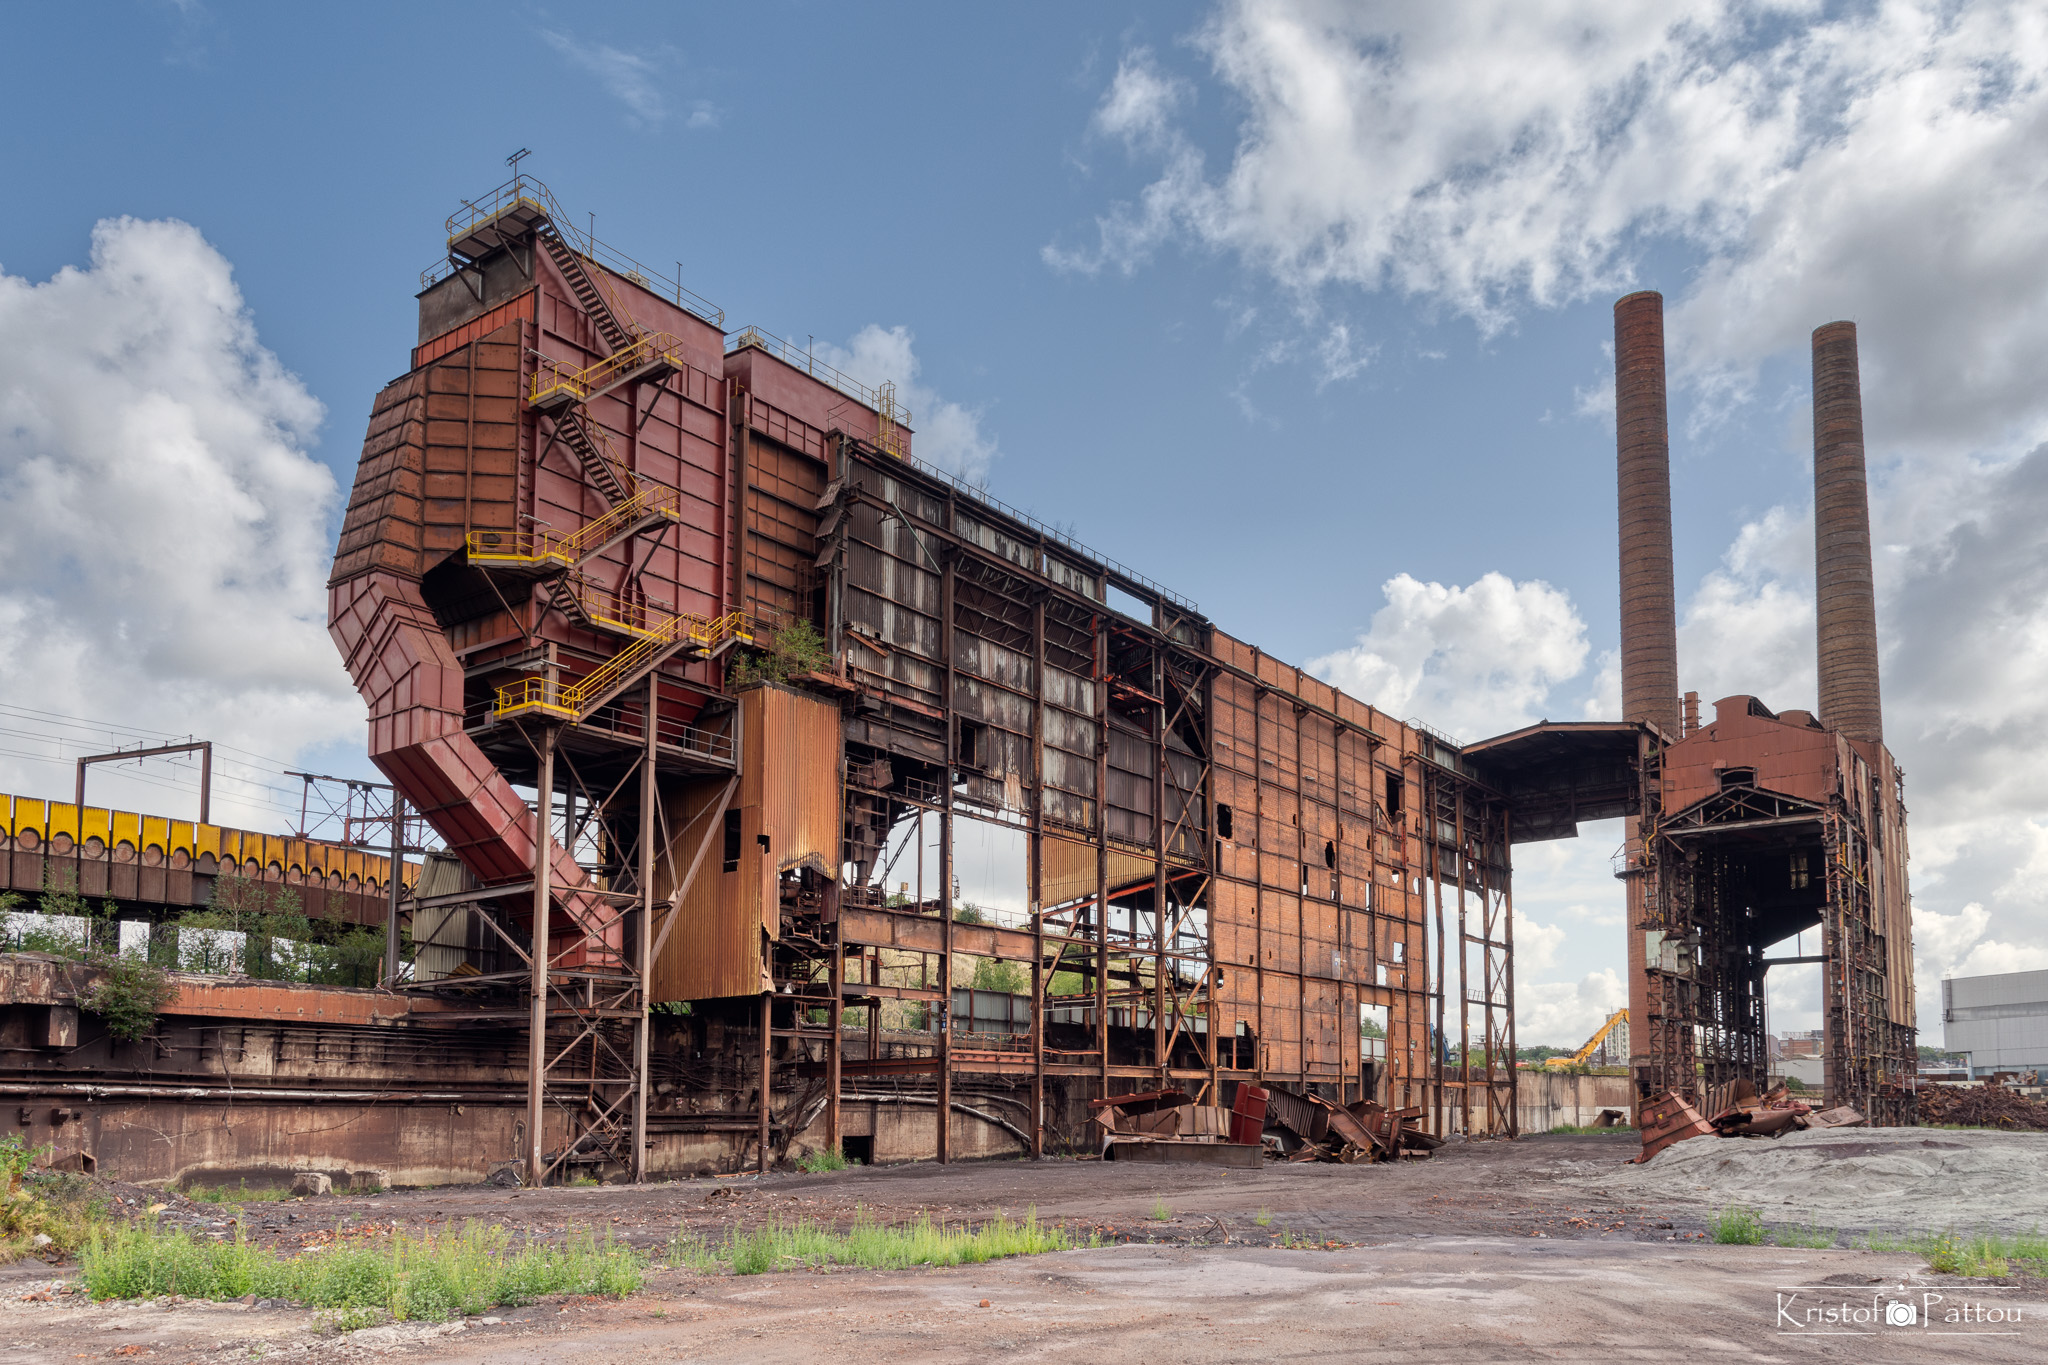 The elephant, a forgotten steel factory